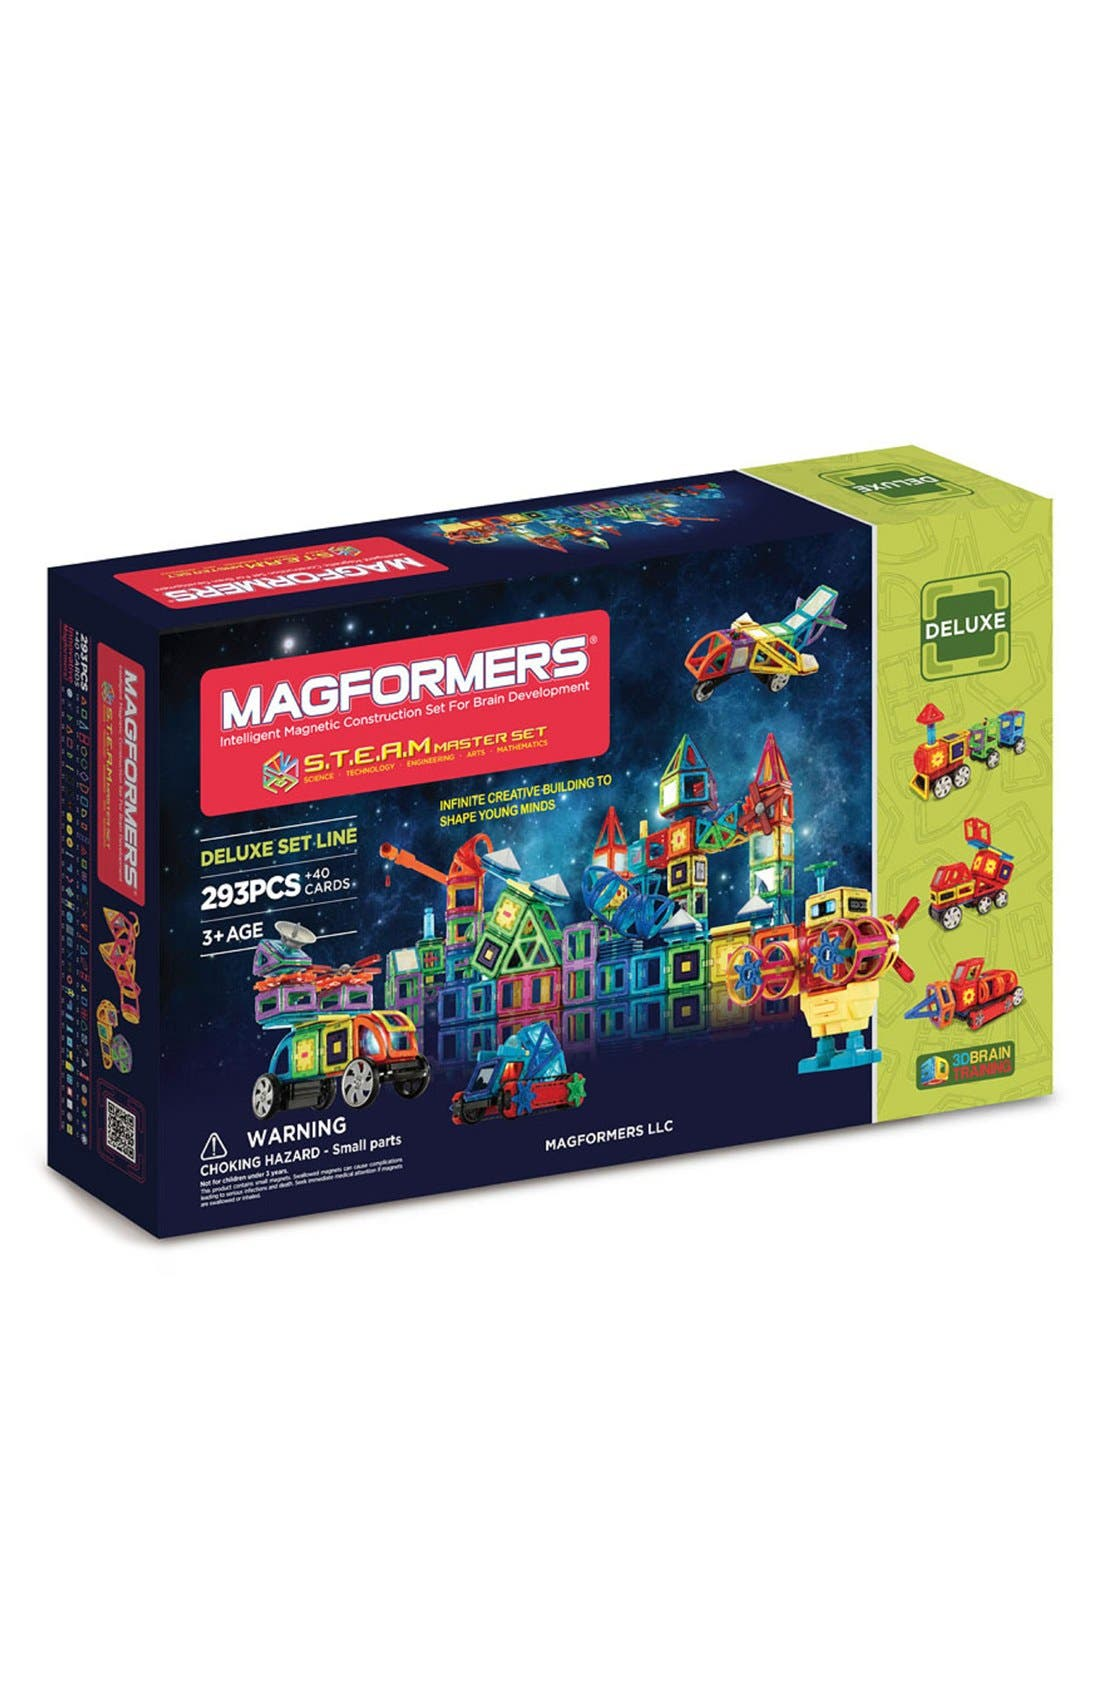 Alternate Image 1 Selected - Magformers 'S.T.E.A.M. Deluxe' Magnetic Construction Set